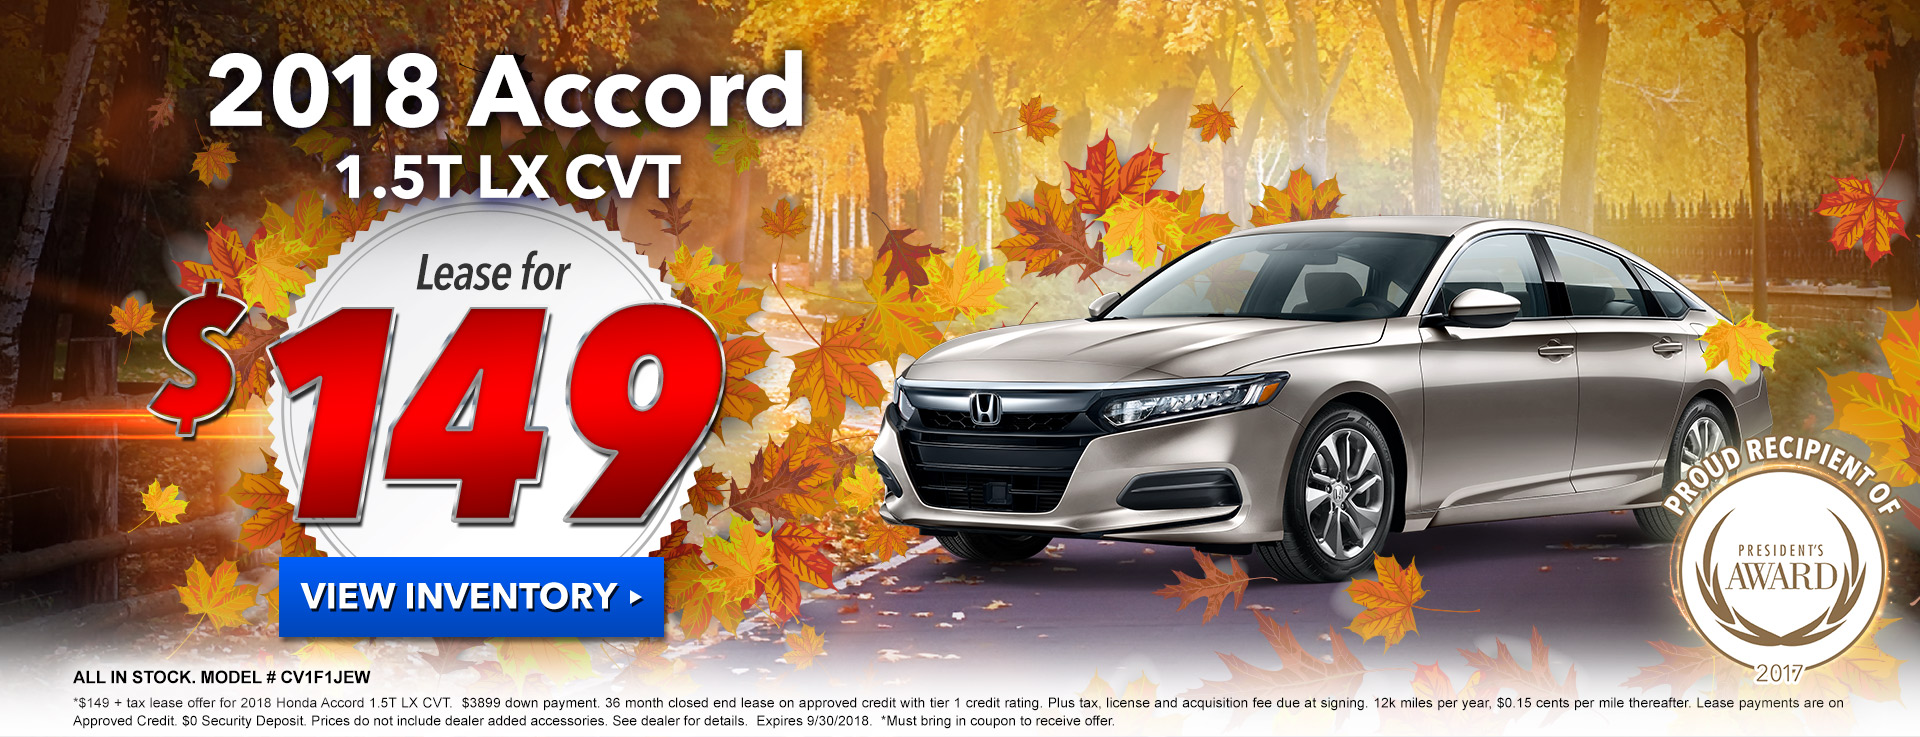 Honda Accord Sedan $149 Lease